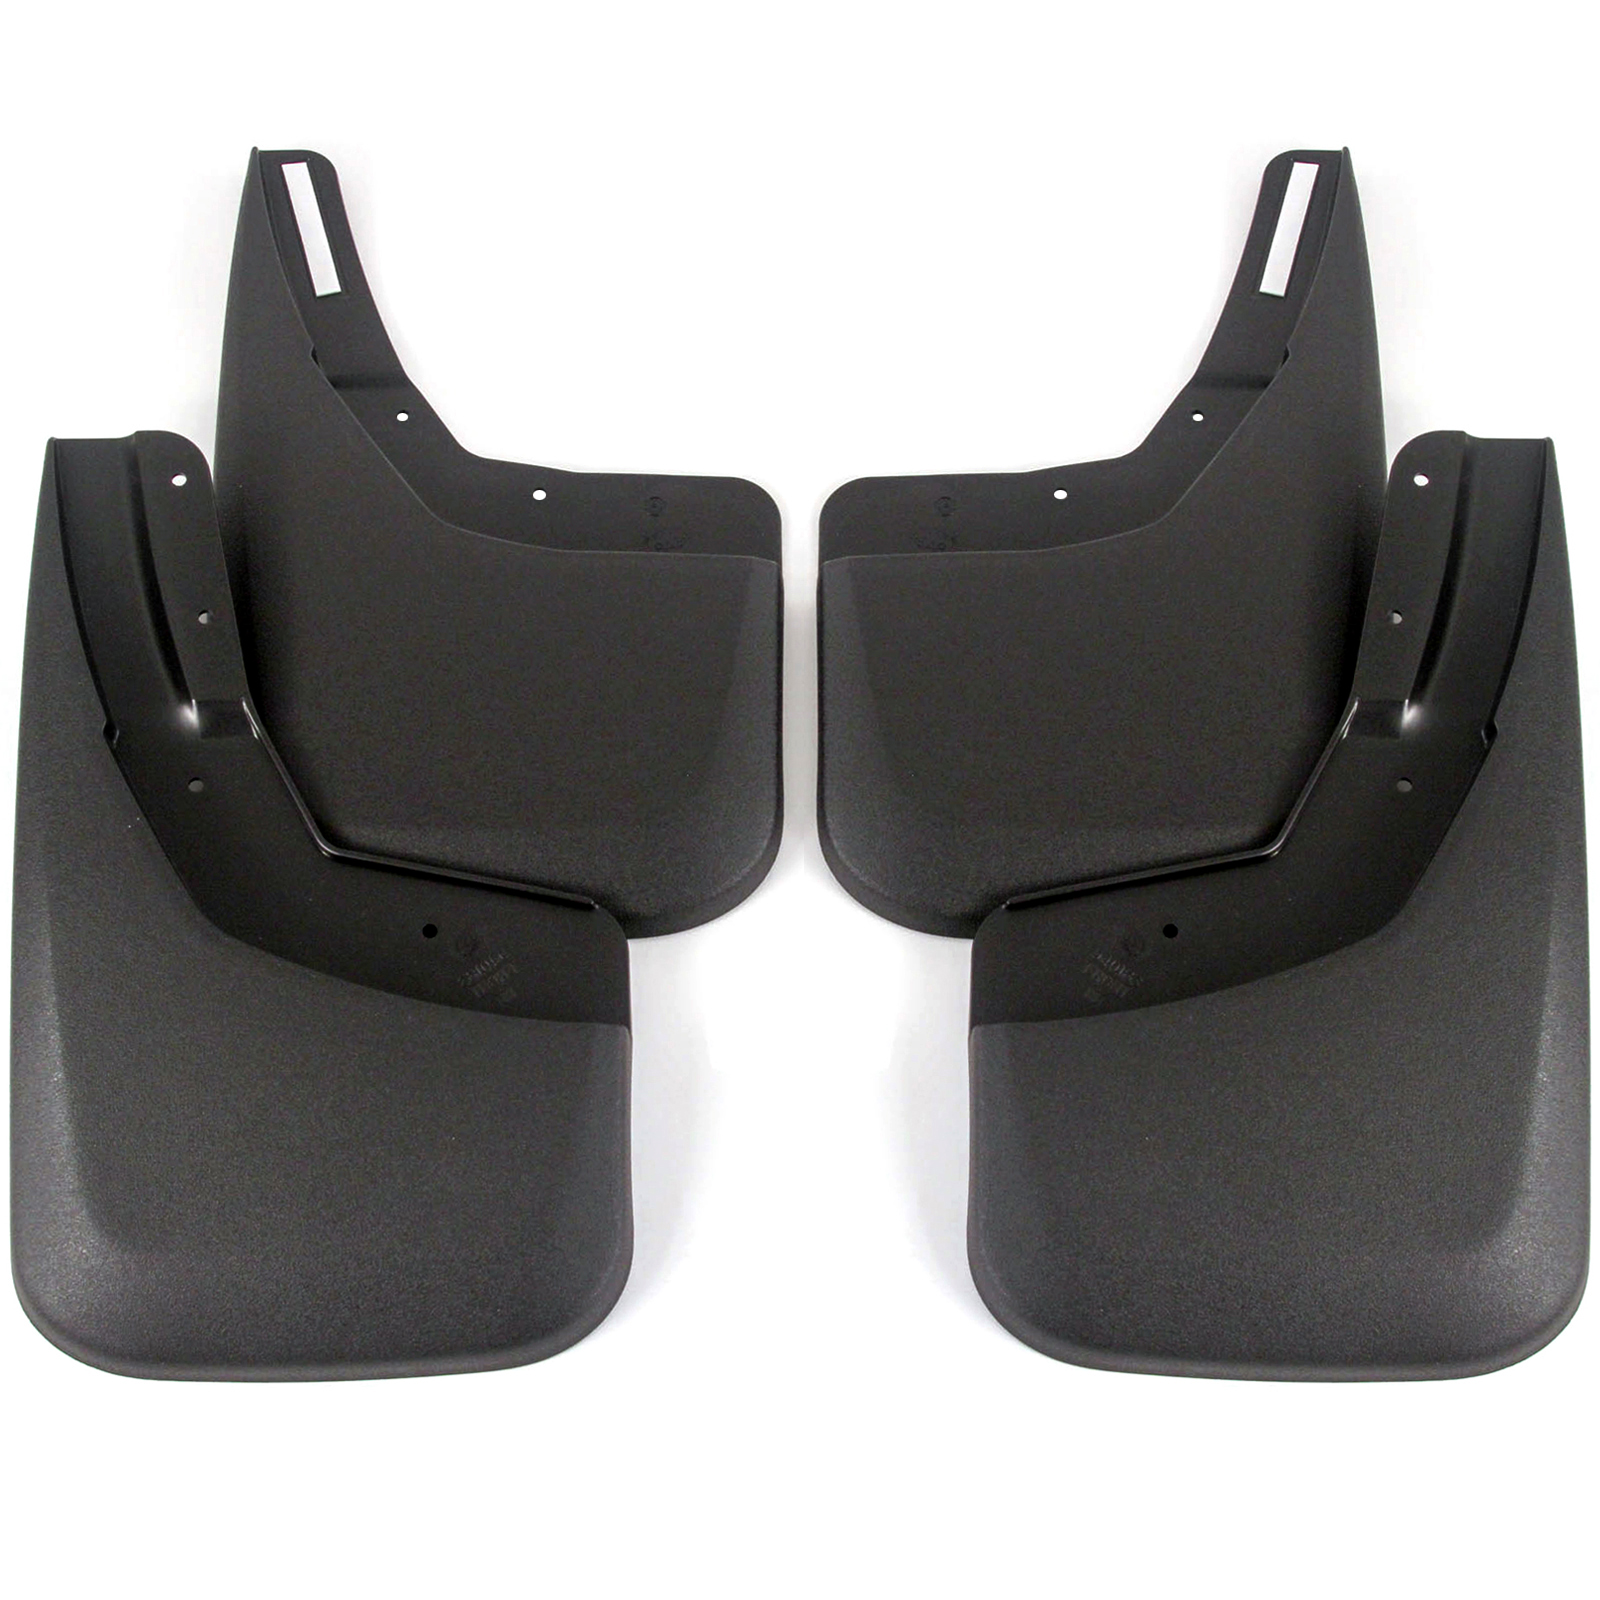 56881 Husky CUSTOM Mud Guards Chevrolet Silverado 2014-2018 Front Pair